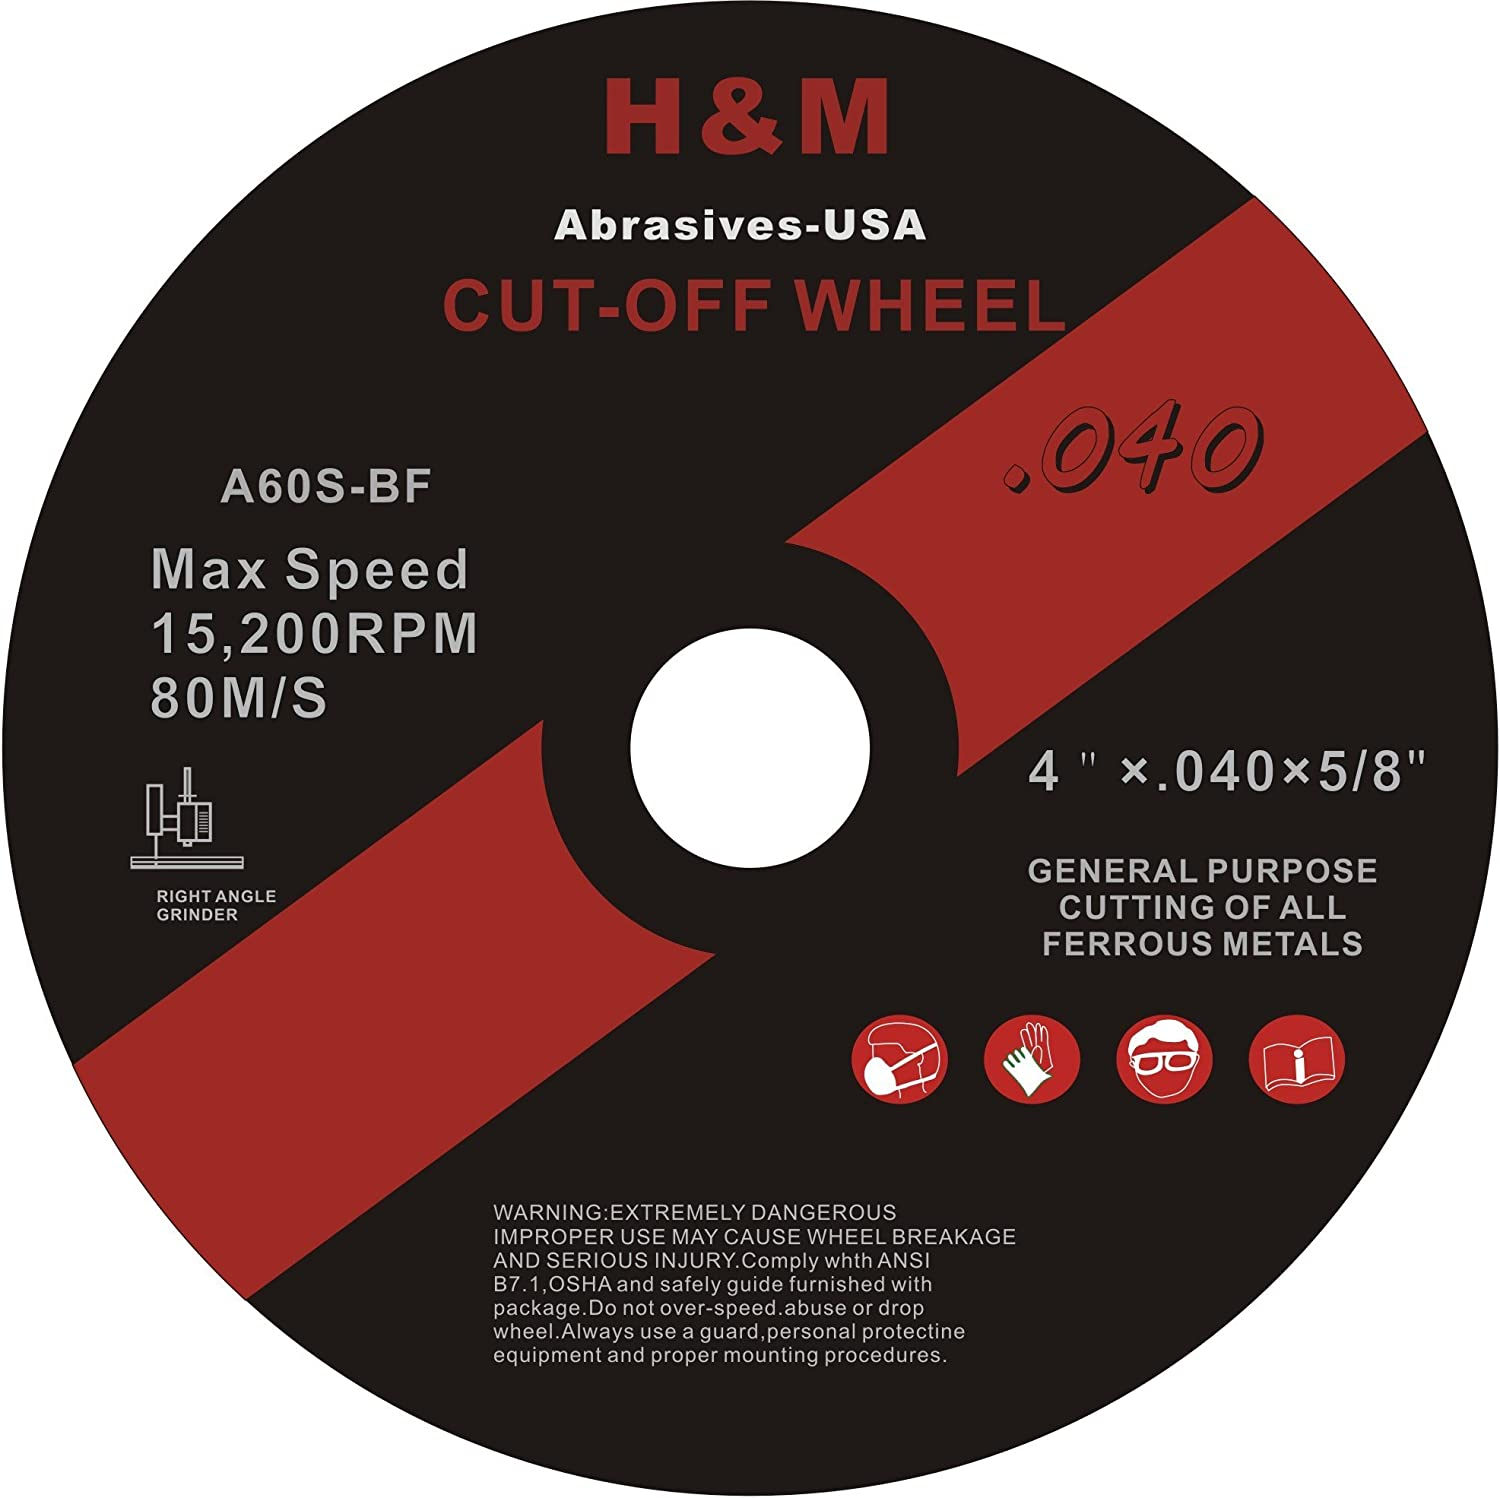 4 x .040 x 5//8 CUT-OFF WHEELS for Stainless Steel /&.Metal Cutting Disc 50 PACK